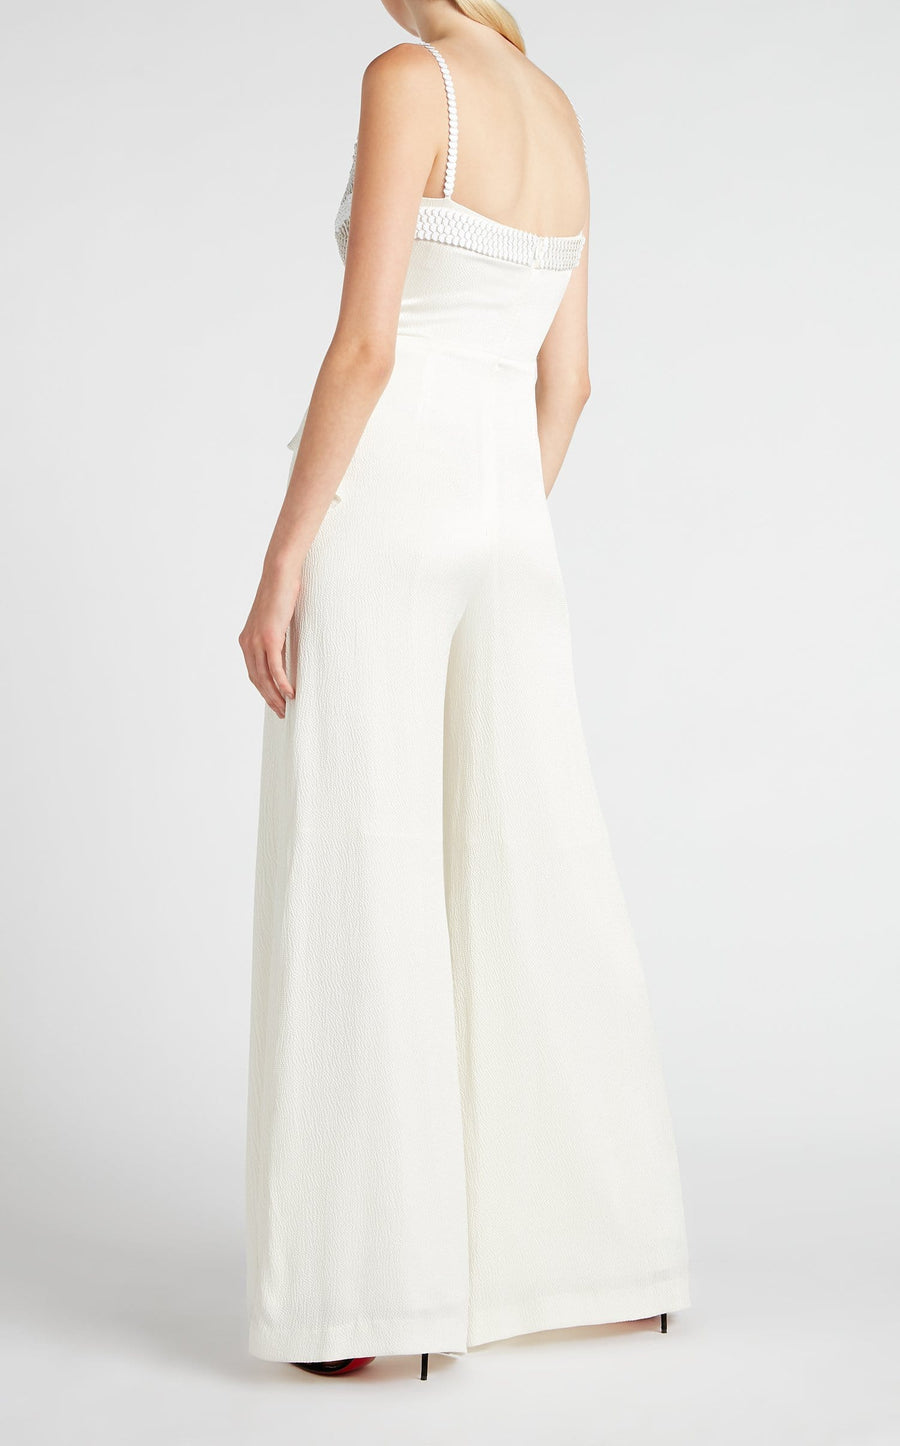 Primrose Jumpsuit In White from Roland Mouret